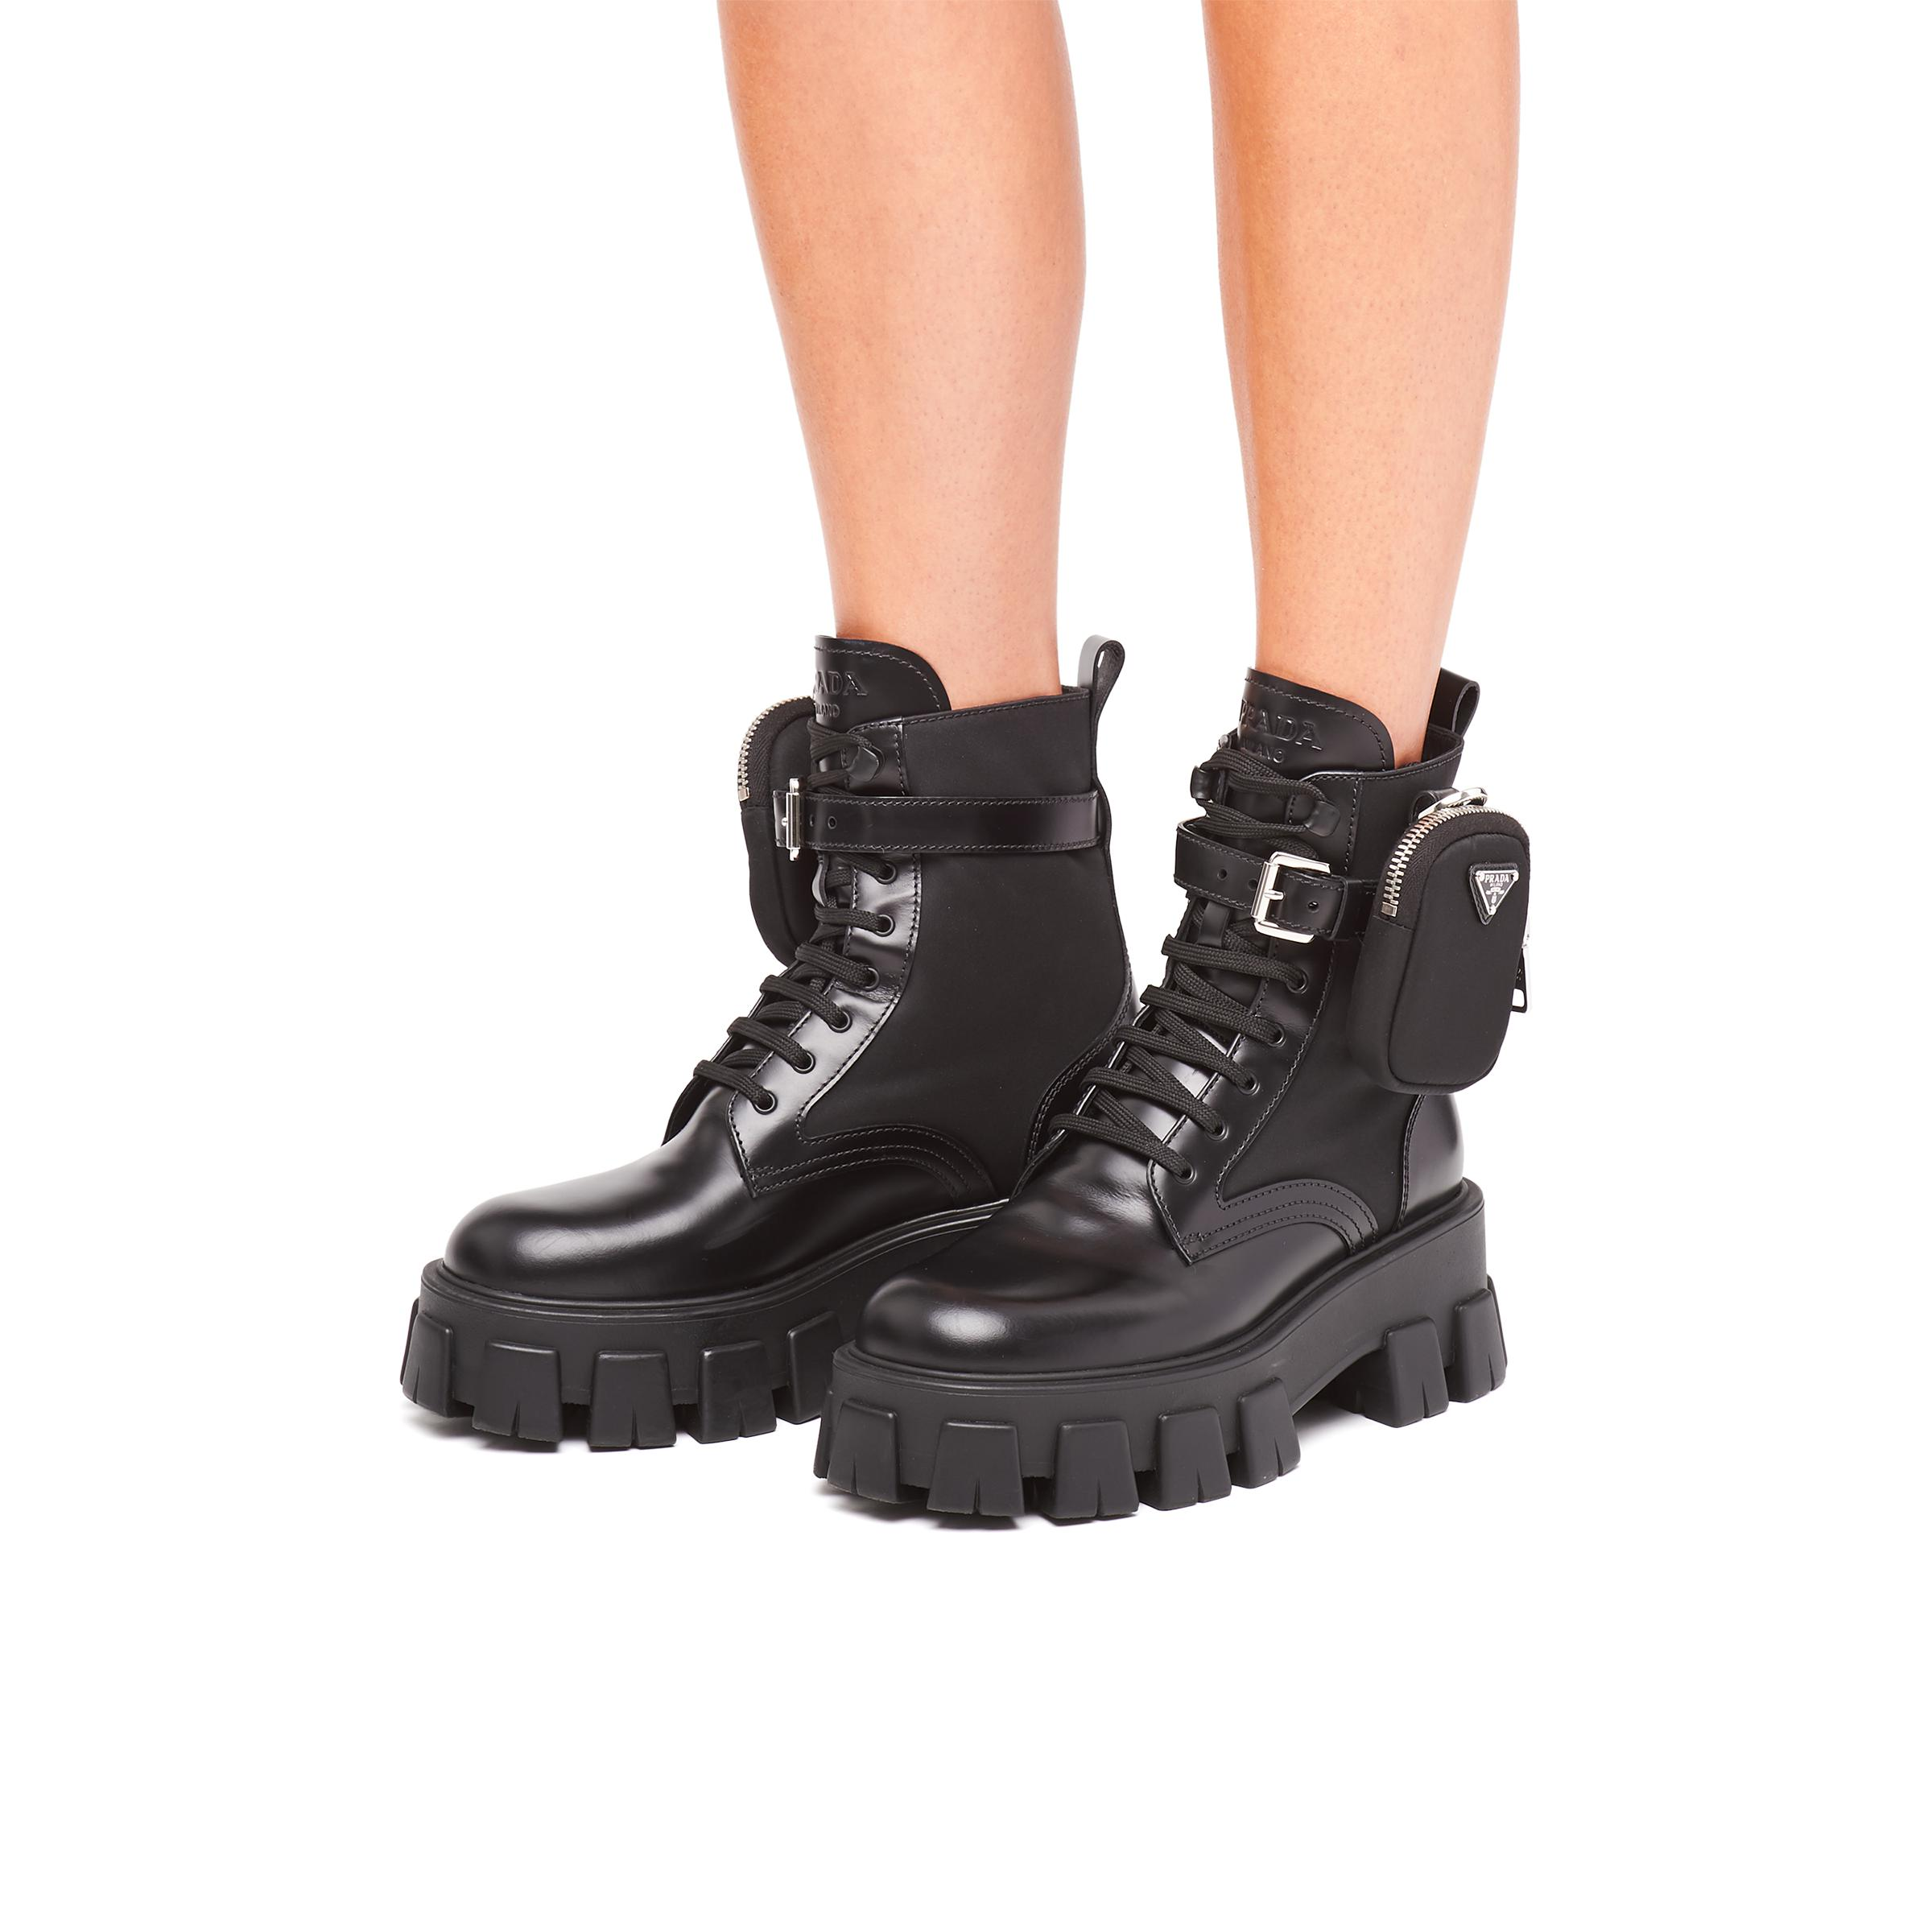 Brushed Rois Leather And Nylon Monolith Boots Women Black 4